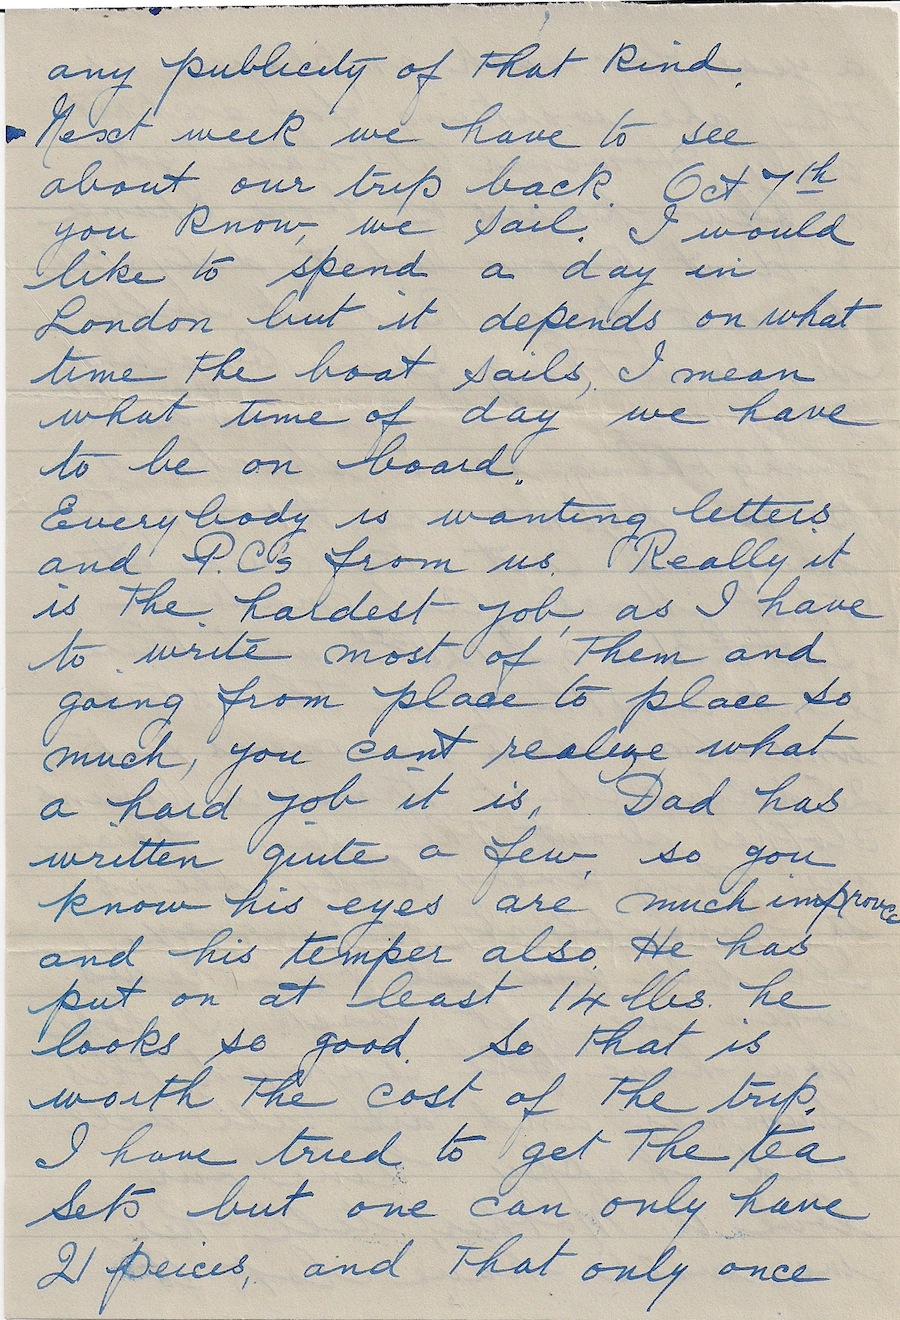 minnie-wilkinson-letter-from-england-1948-5